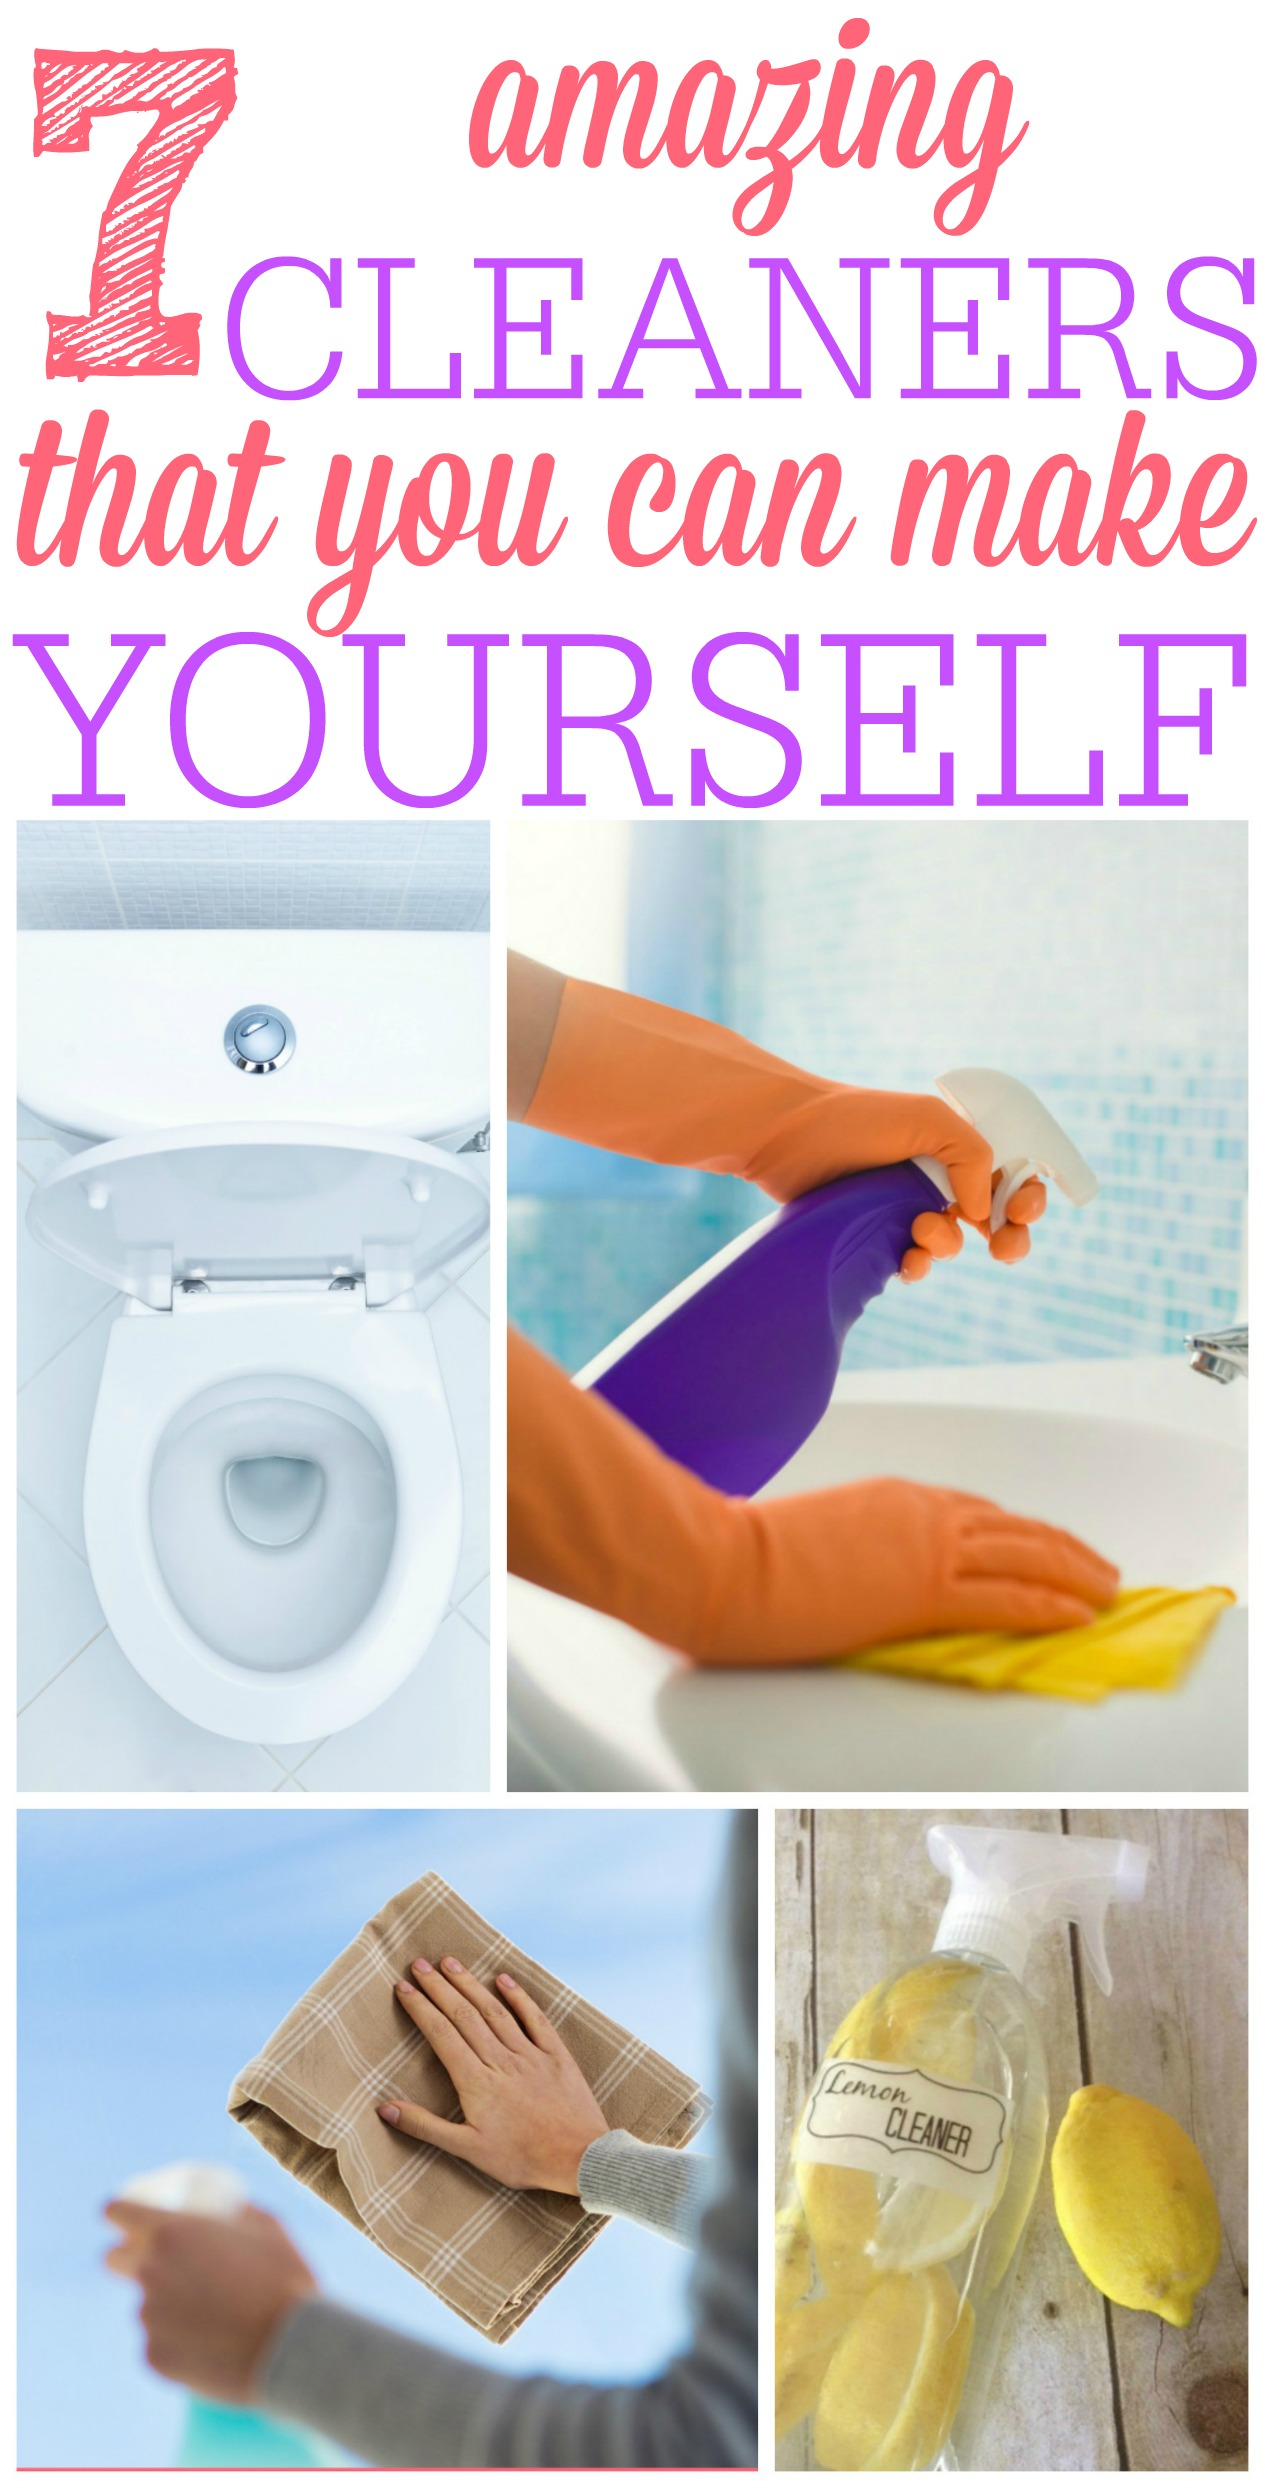 7 Cleaners You Can Make Yourself